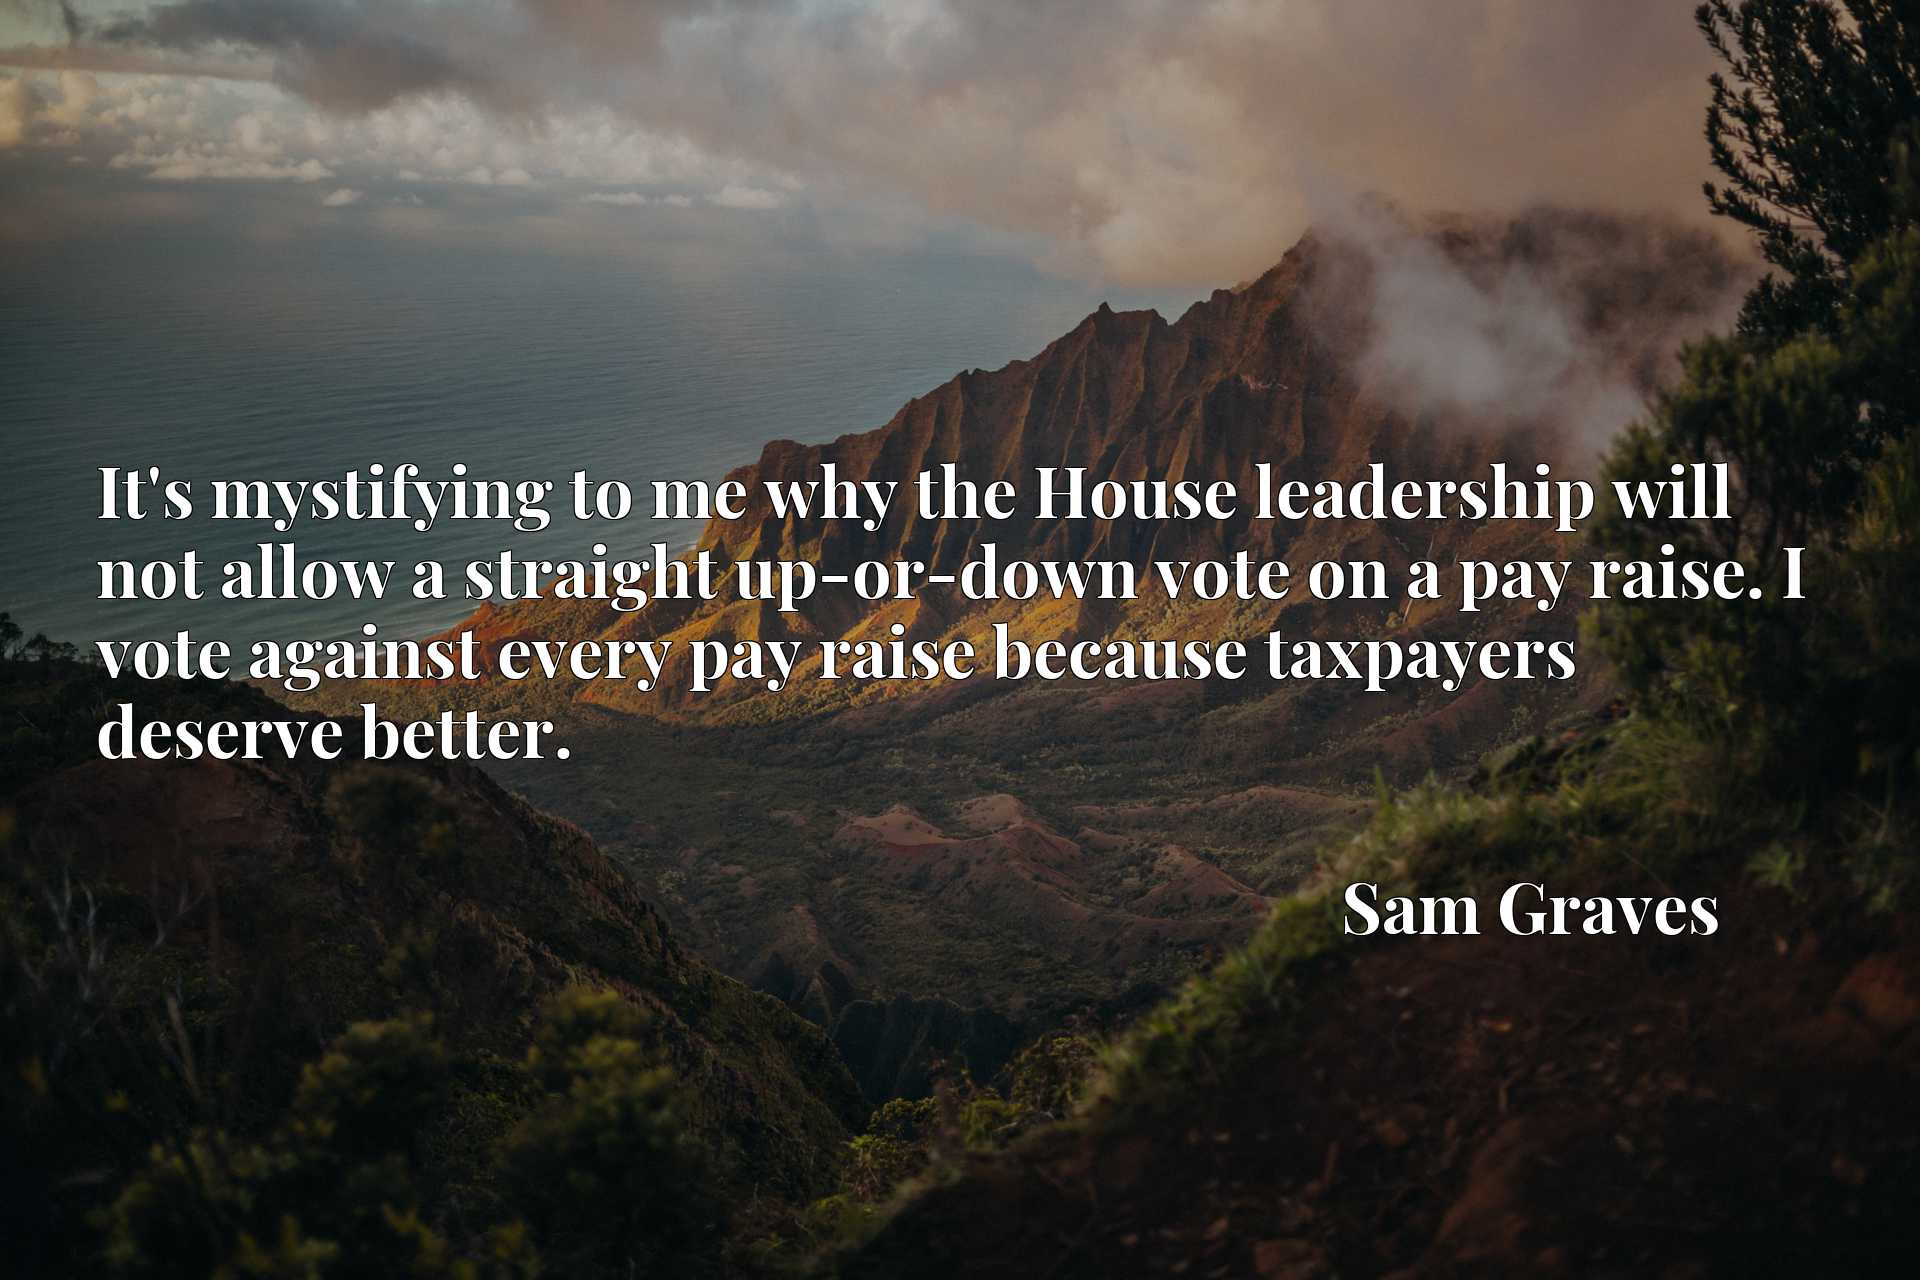 Quote Picture :It's mystifying to me why the House leadership will not allow a straight up-or-down vote on a pay raise. I vote against every pay raise because taxpayers deserve better.